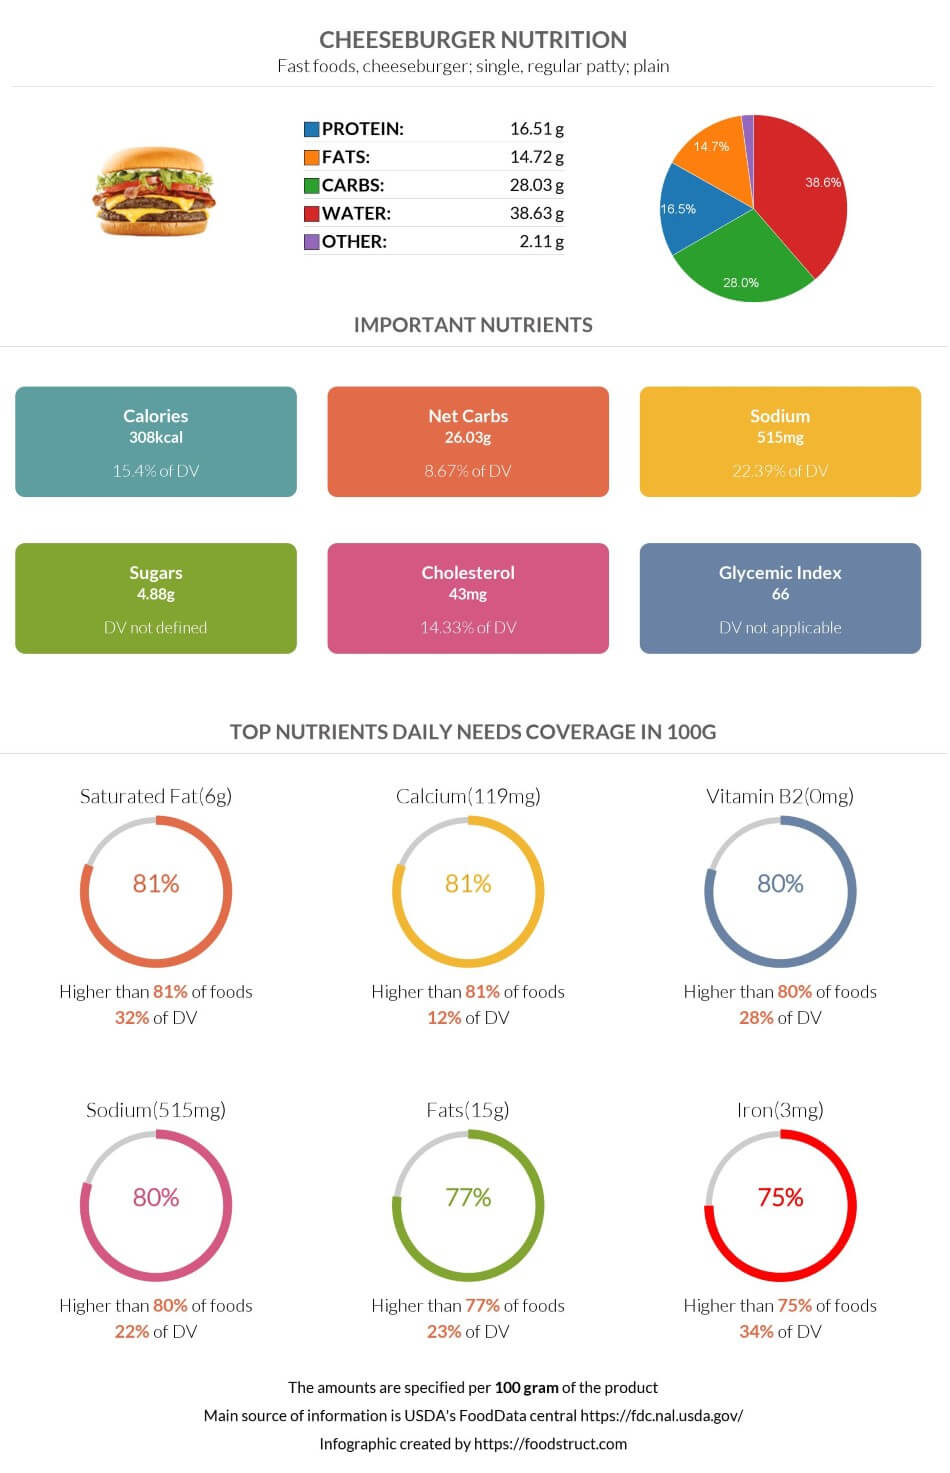 Cheeseburger nutrition infographic